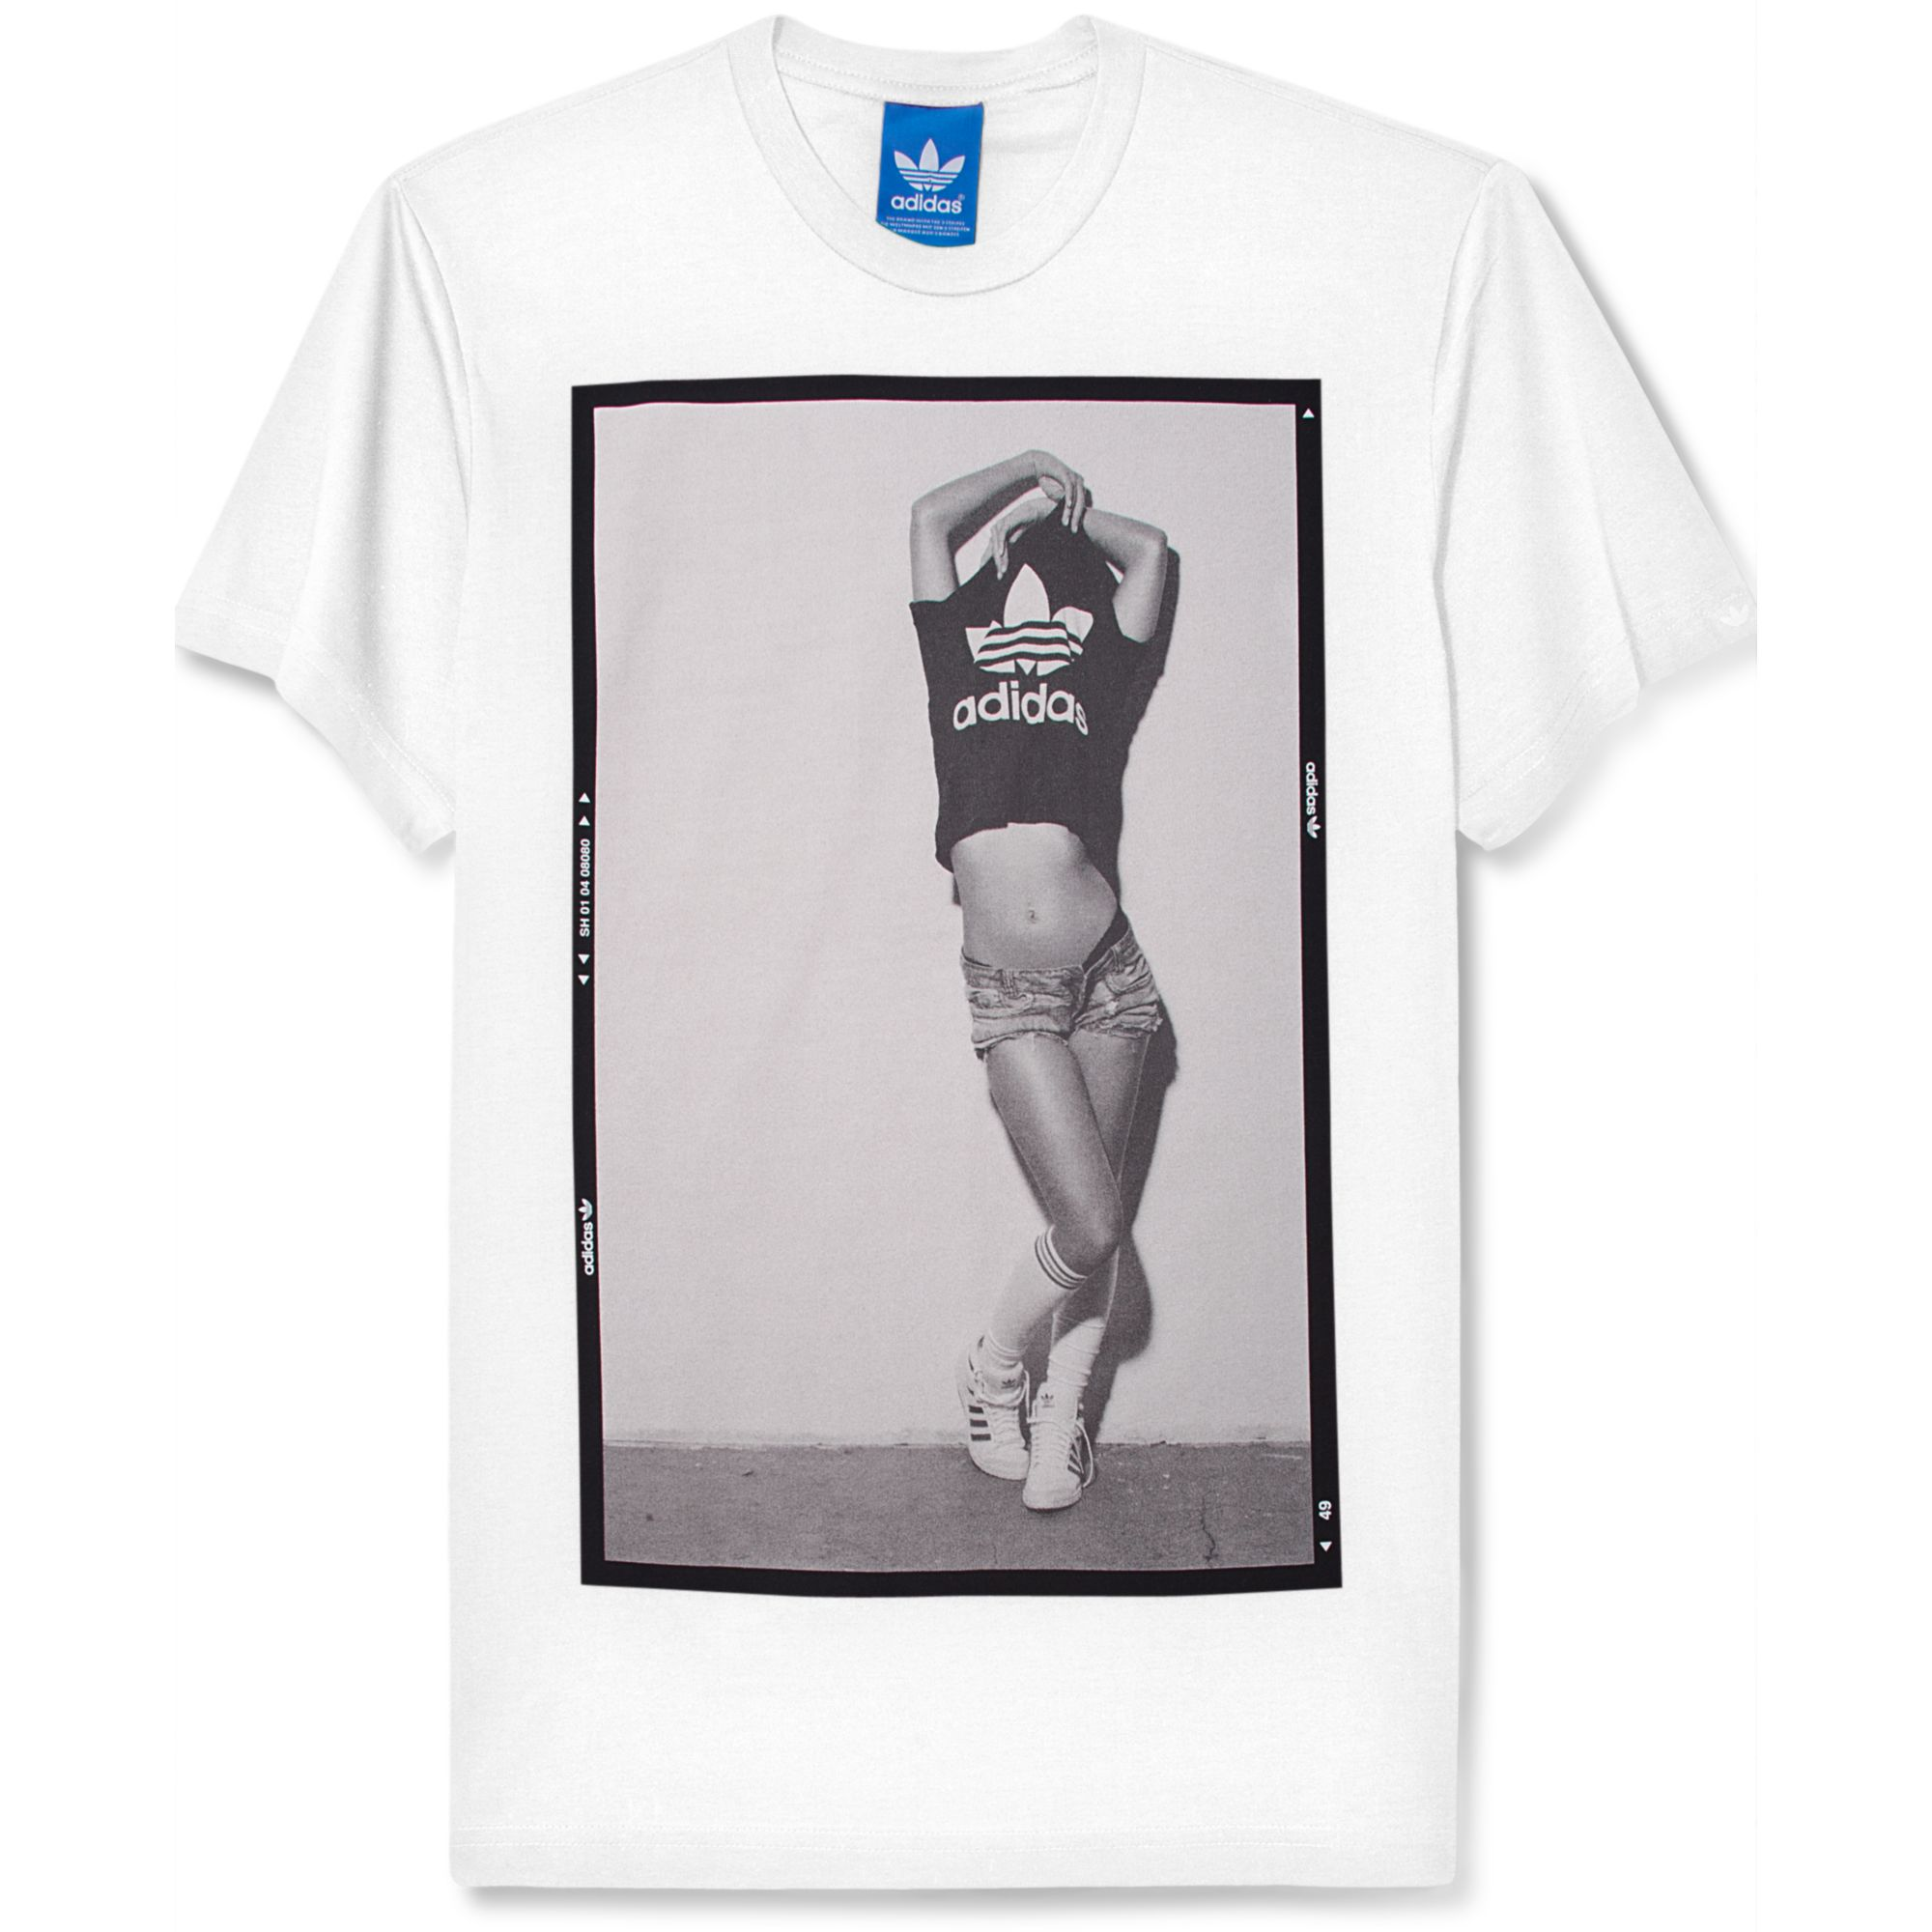 Lyst adidas Shortsleeve Photo Negative Graphic Tshirt in